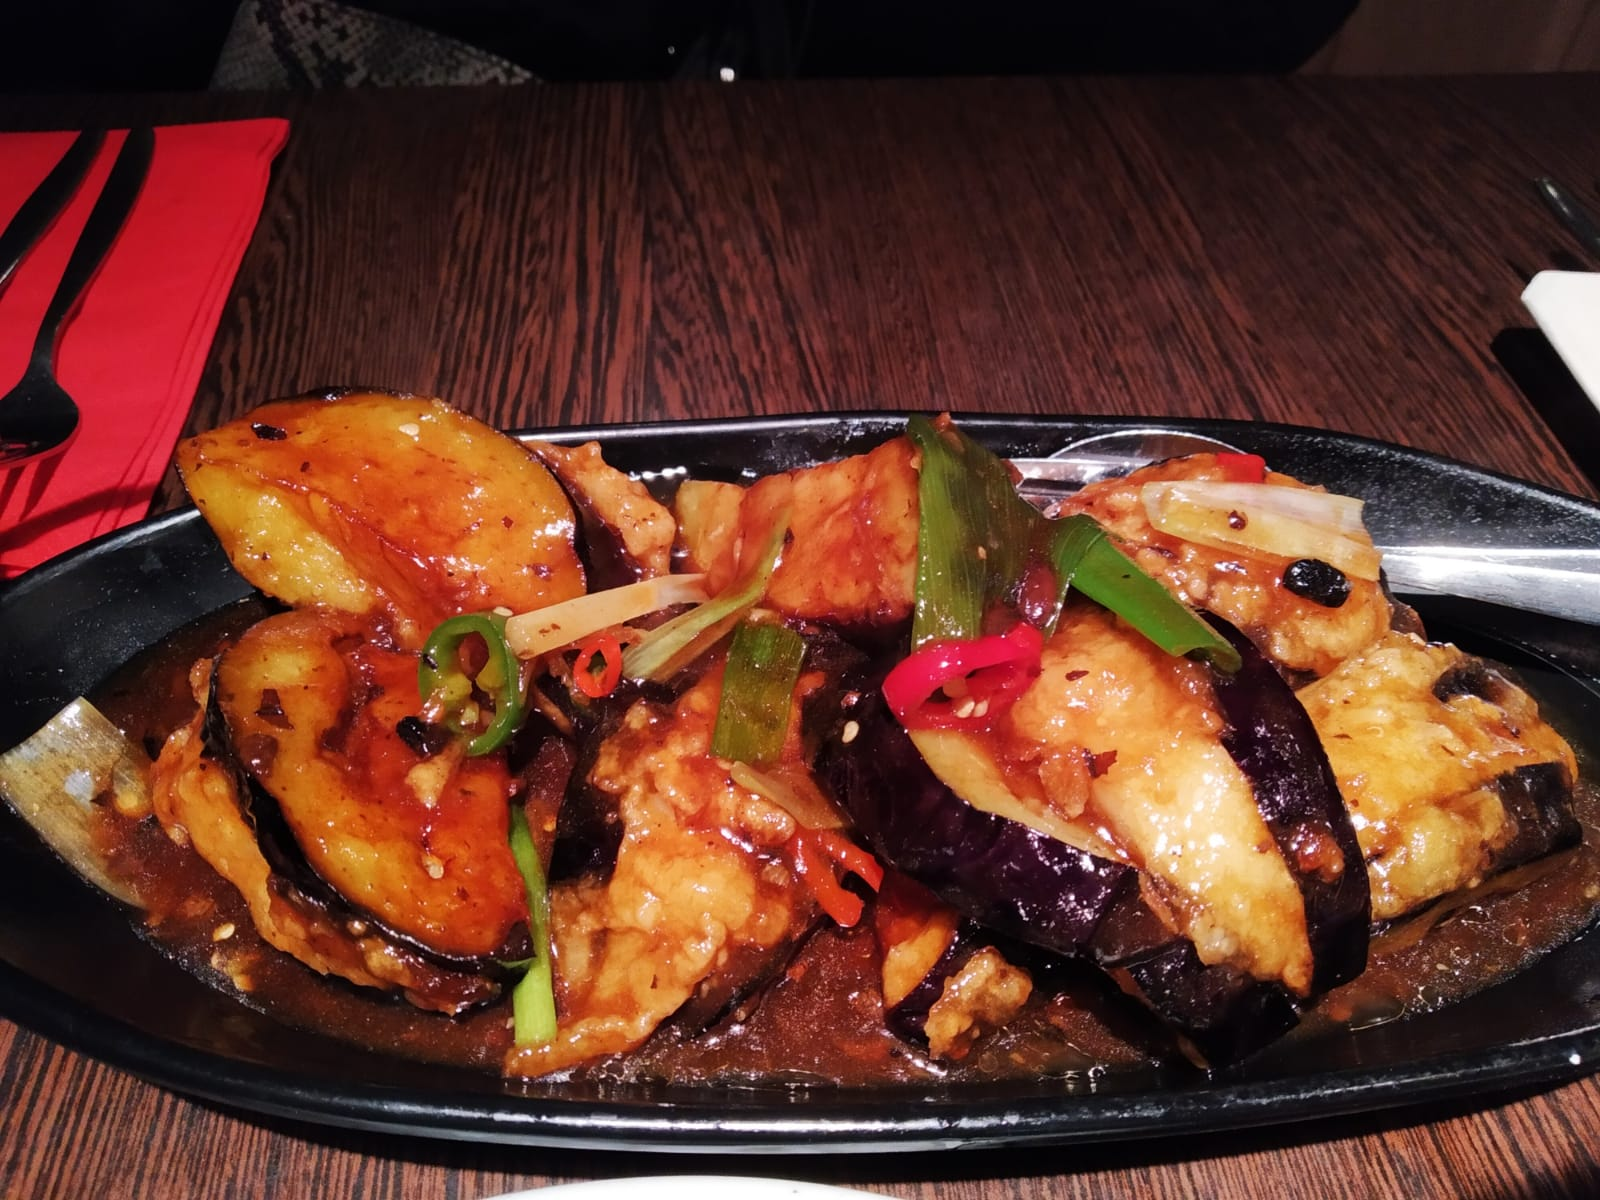 Hands down the best Black bean Eggplant and steamed fish